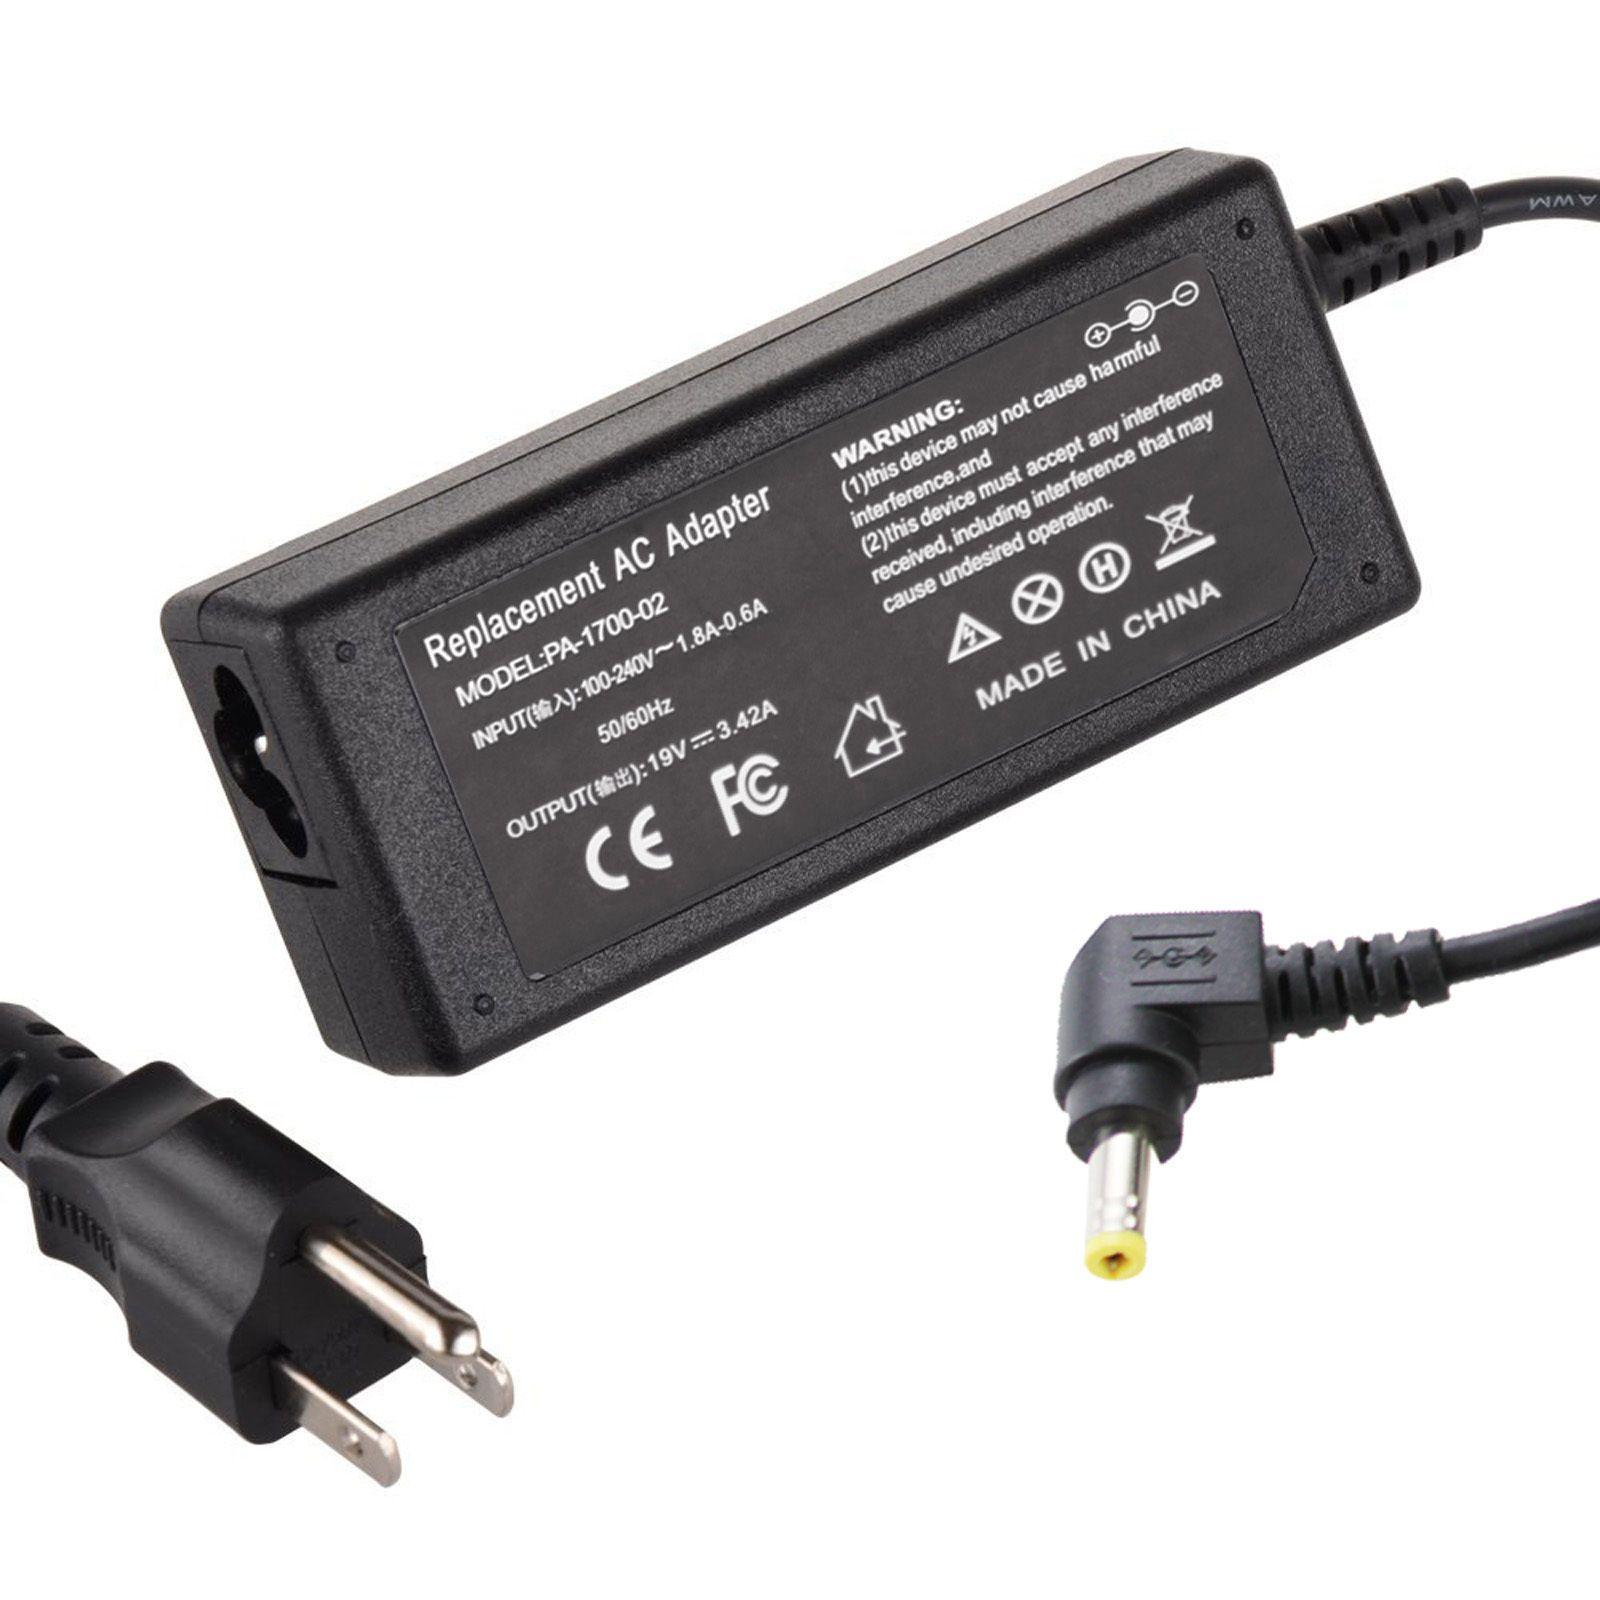 New Charger For Acer Aspire Power Cord Supply Adapter 19V 3.42A 65W 5.5mm2.5mm